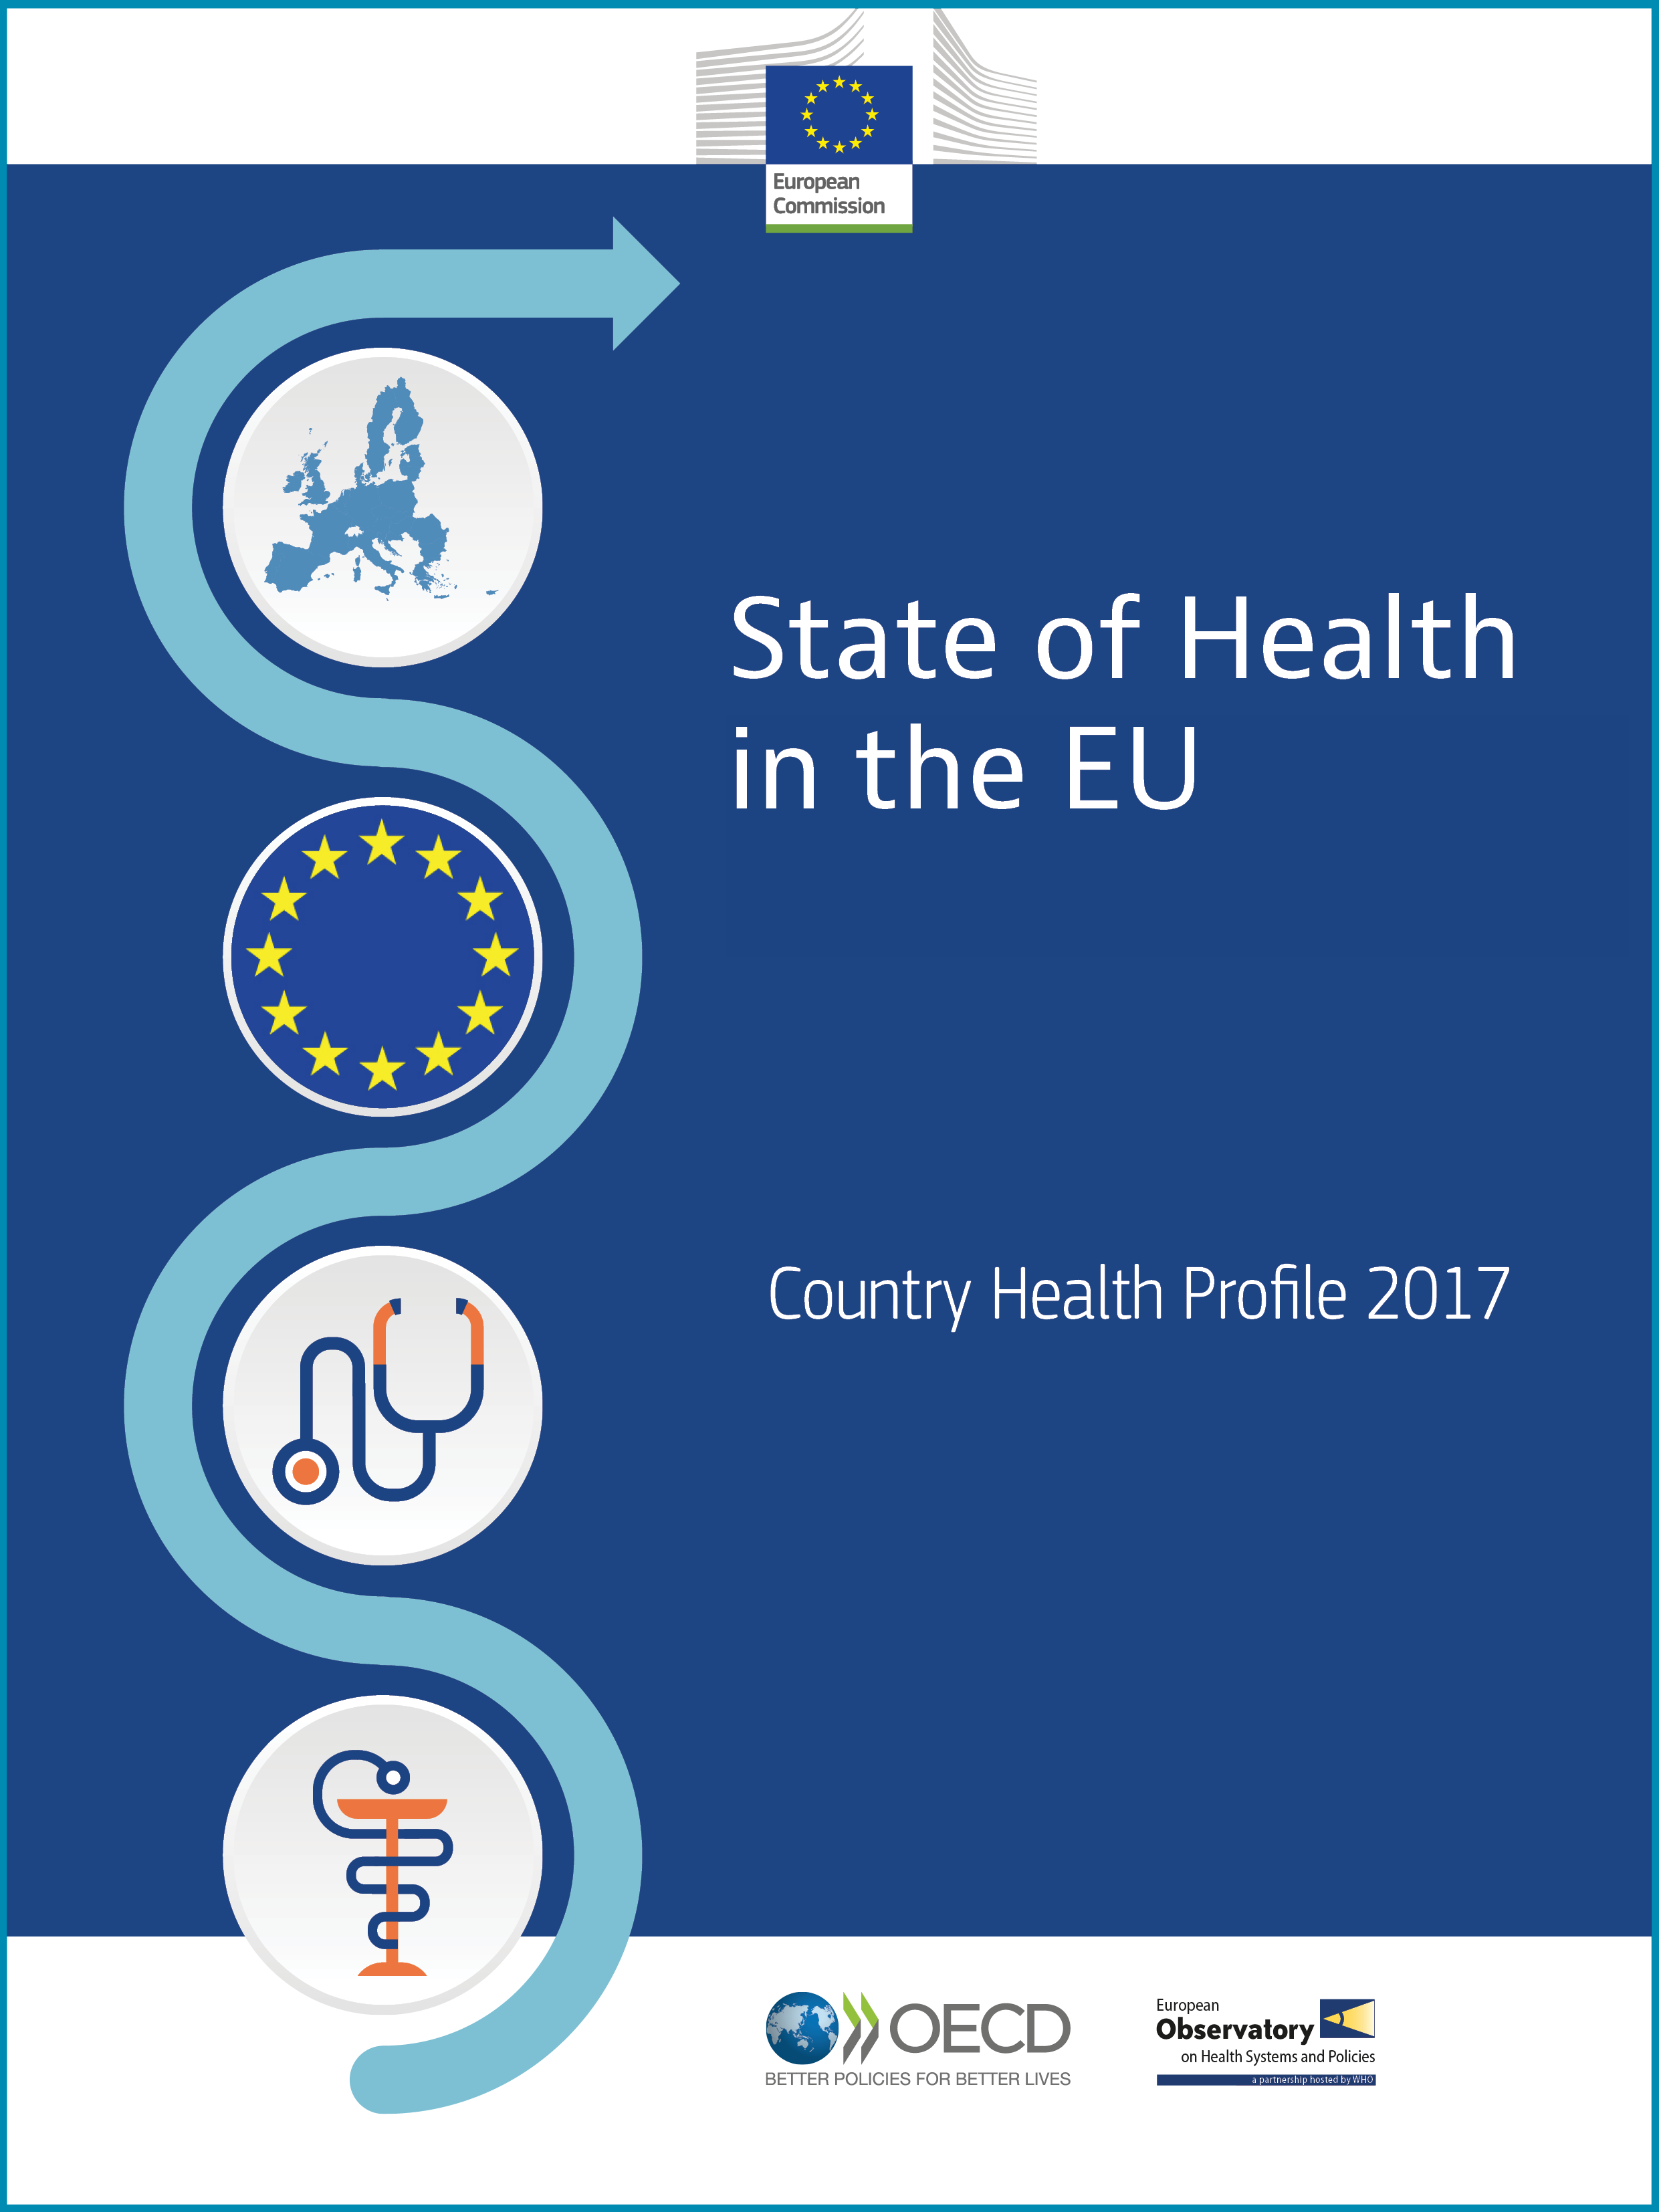 Country Health Profiles 2017 - OECD